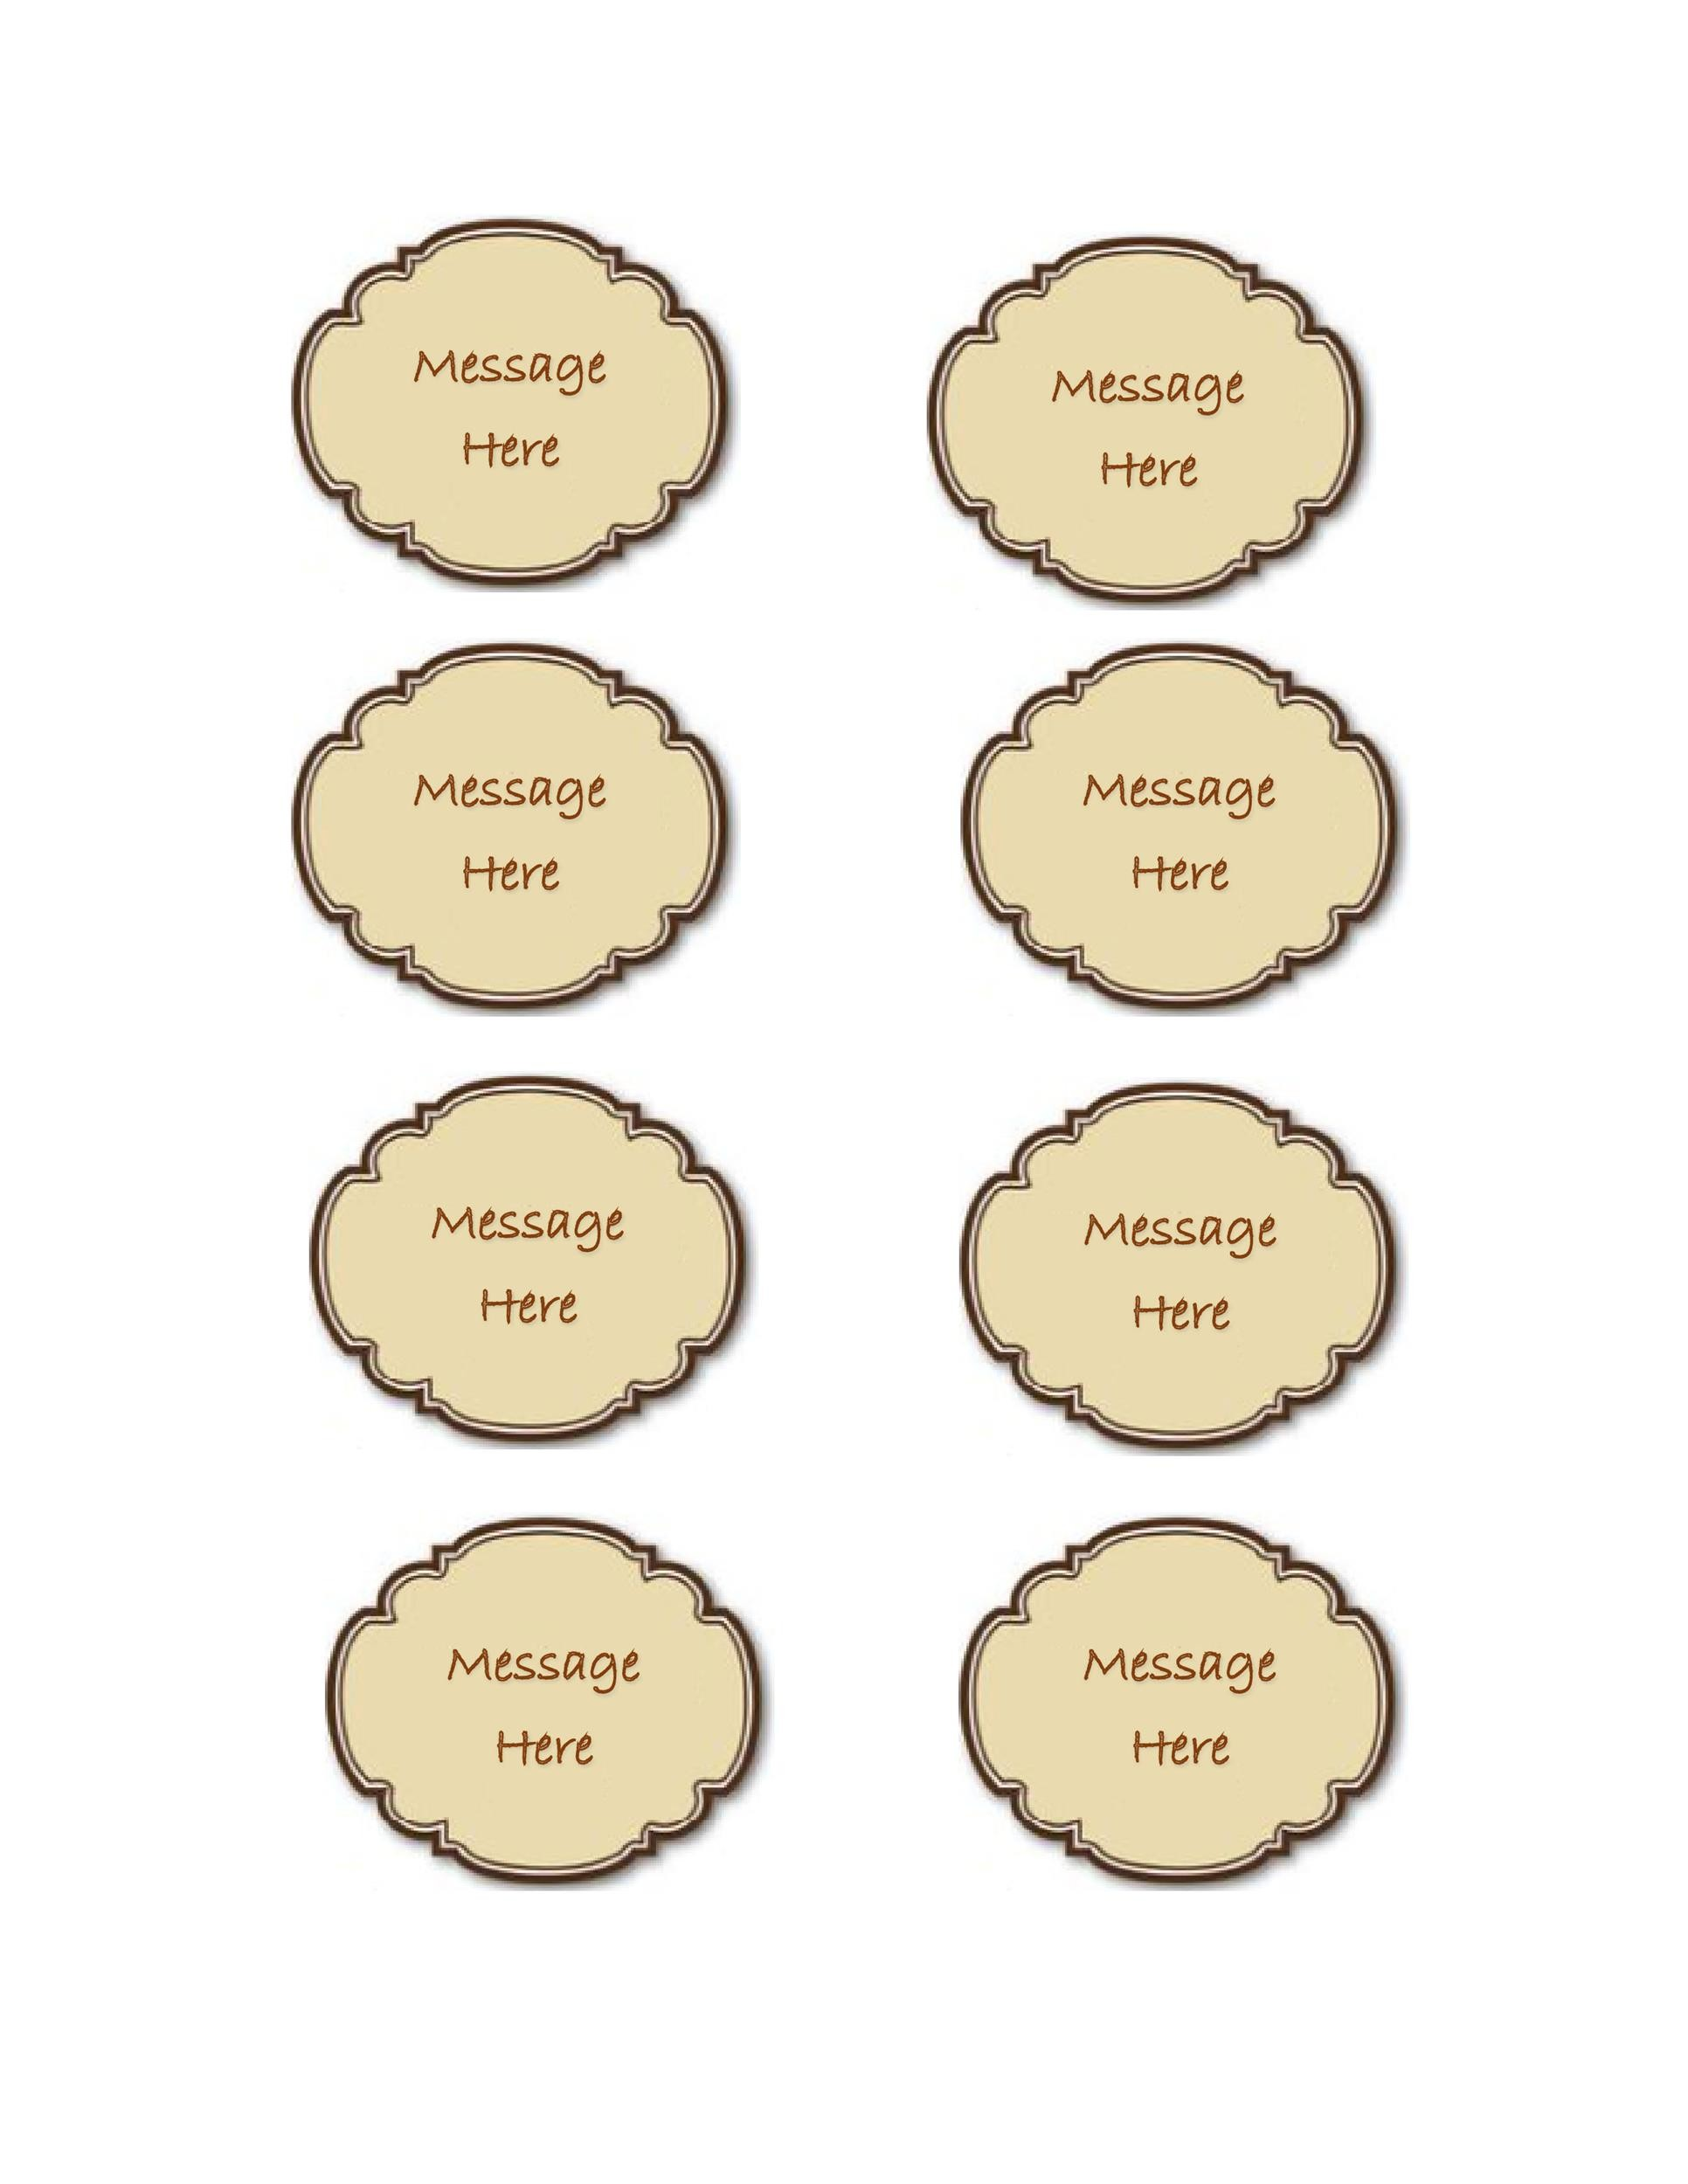 44 Free Printable Gift Tag Templates - Template Lab - gift tag template